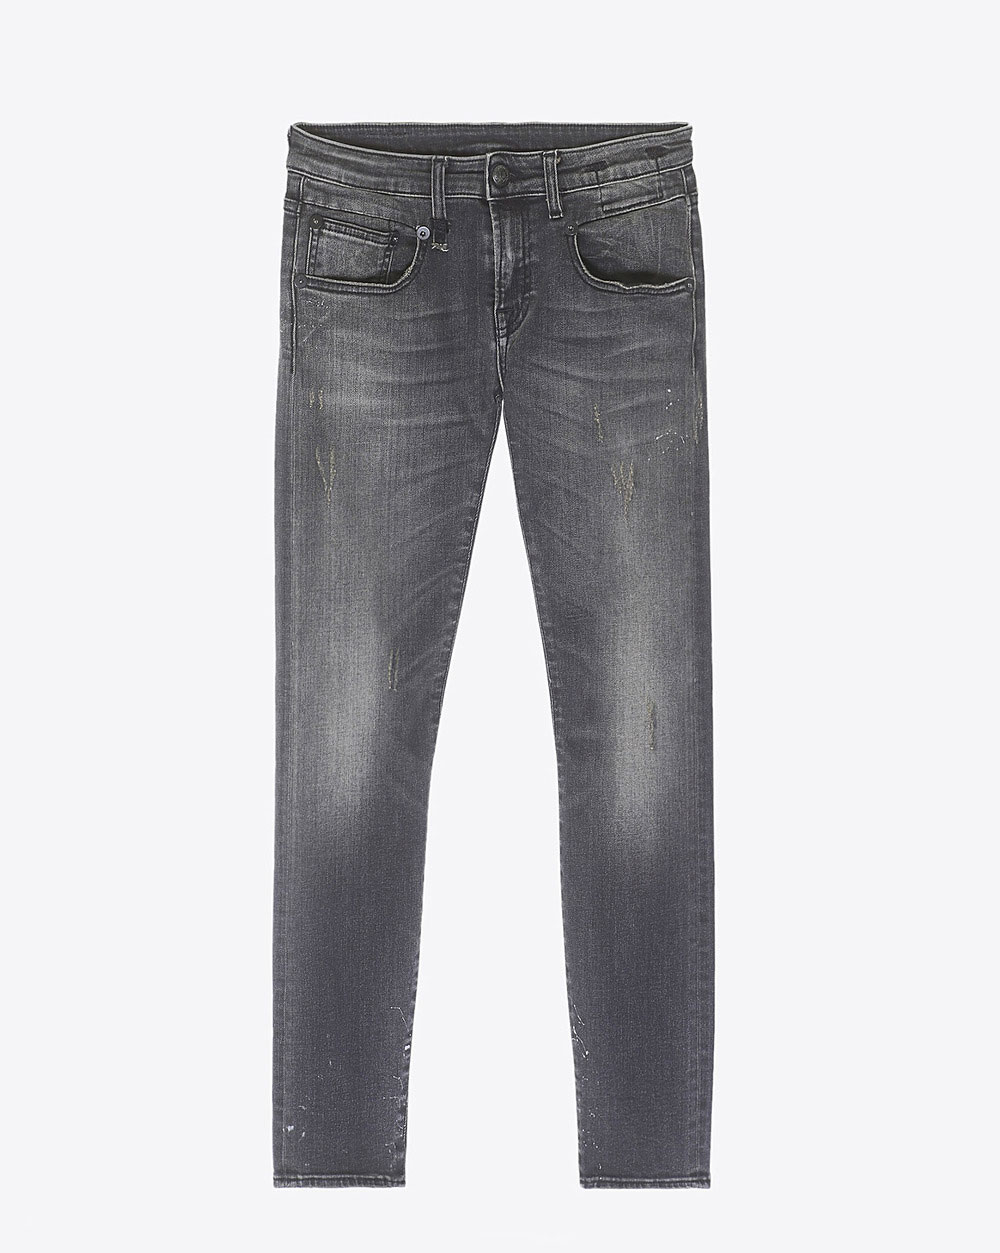 R13 Denim Collection Boy Skinny - Orion Black